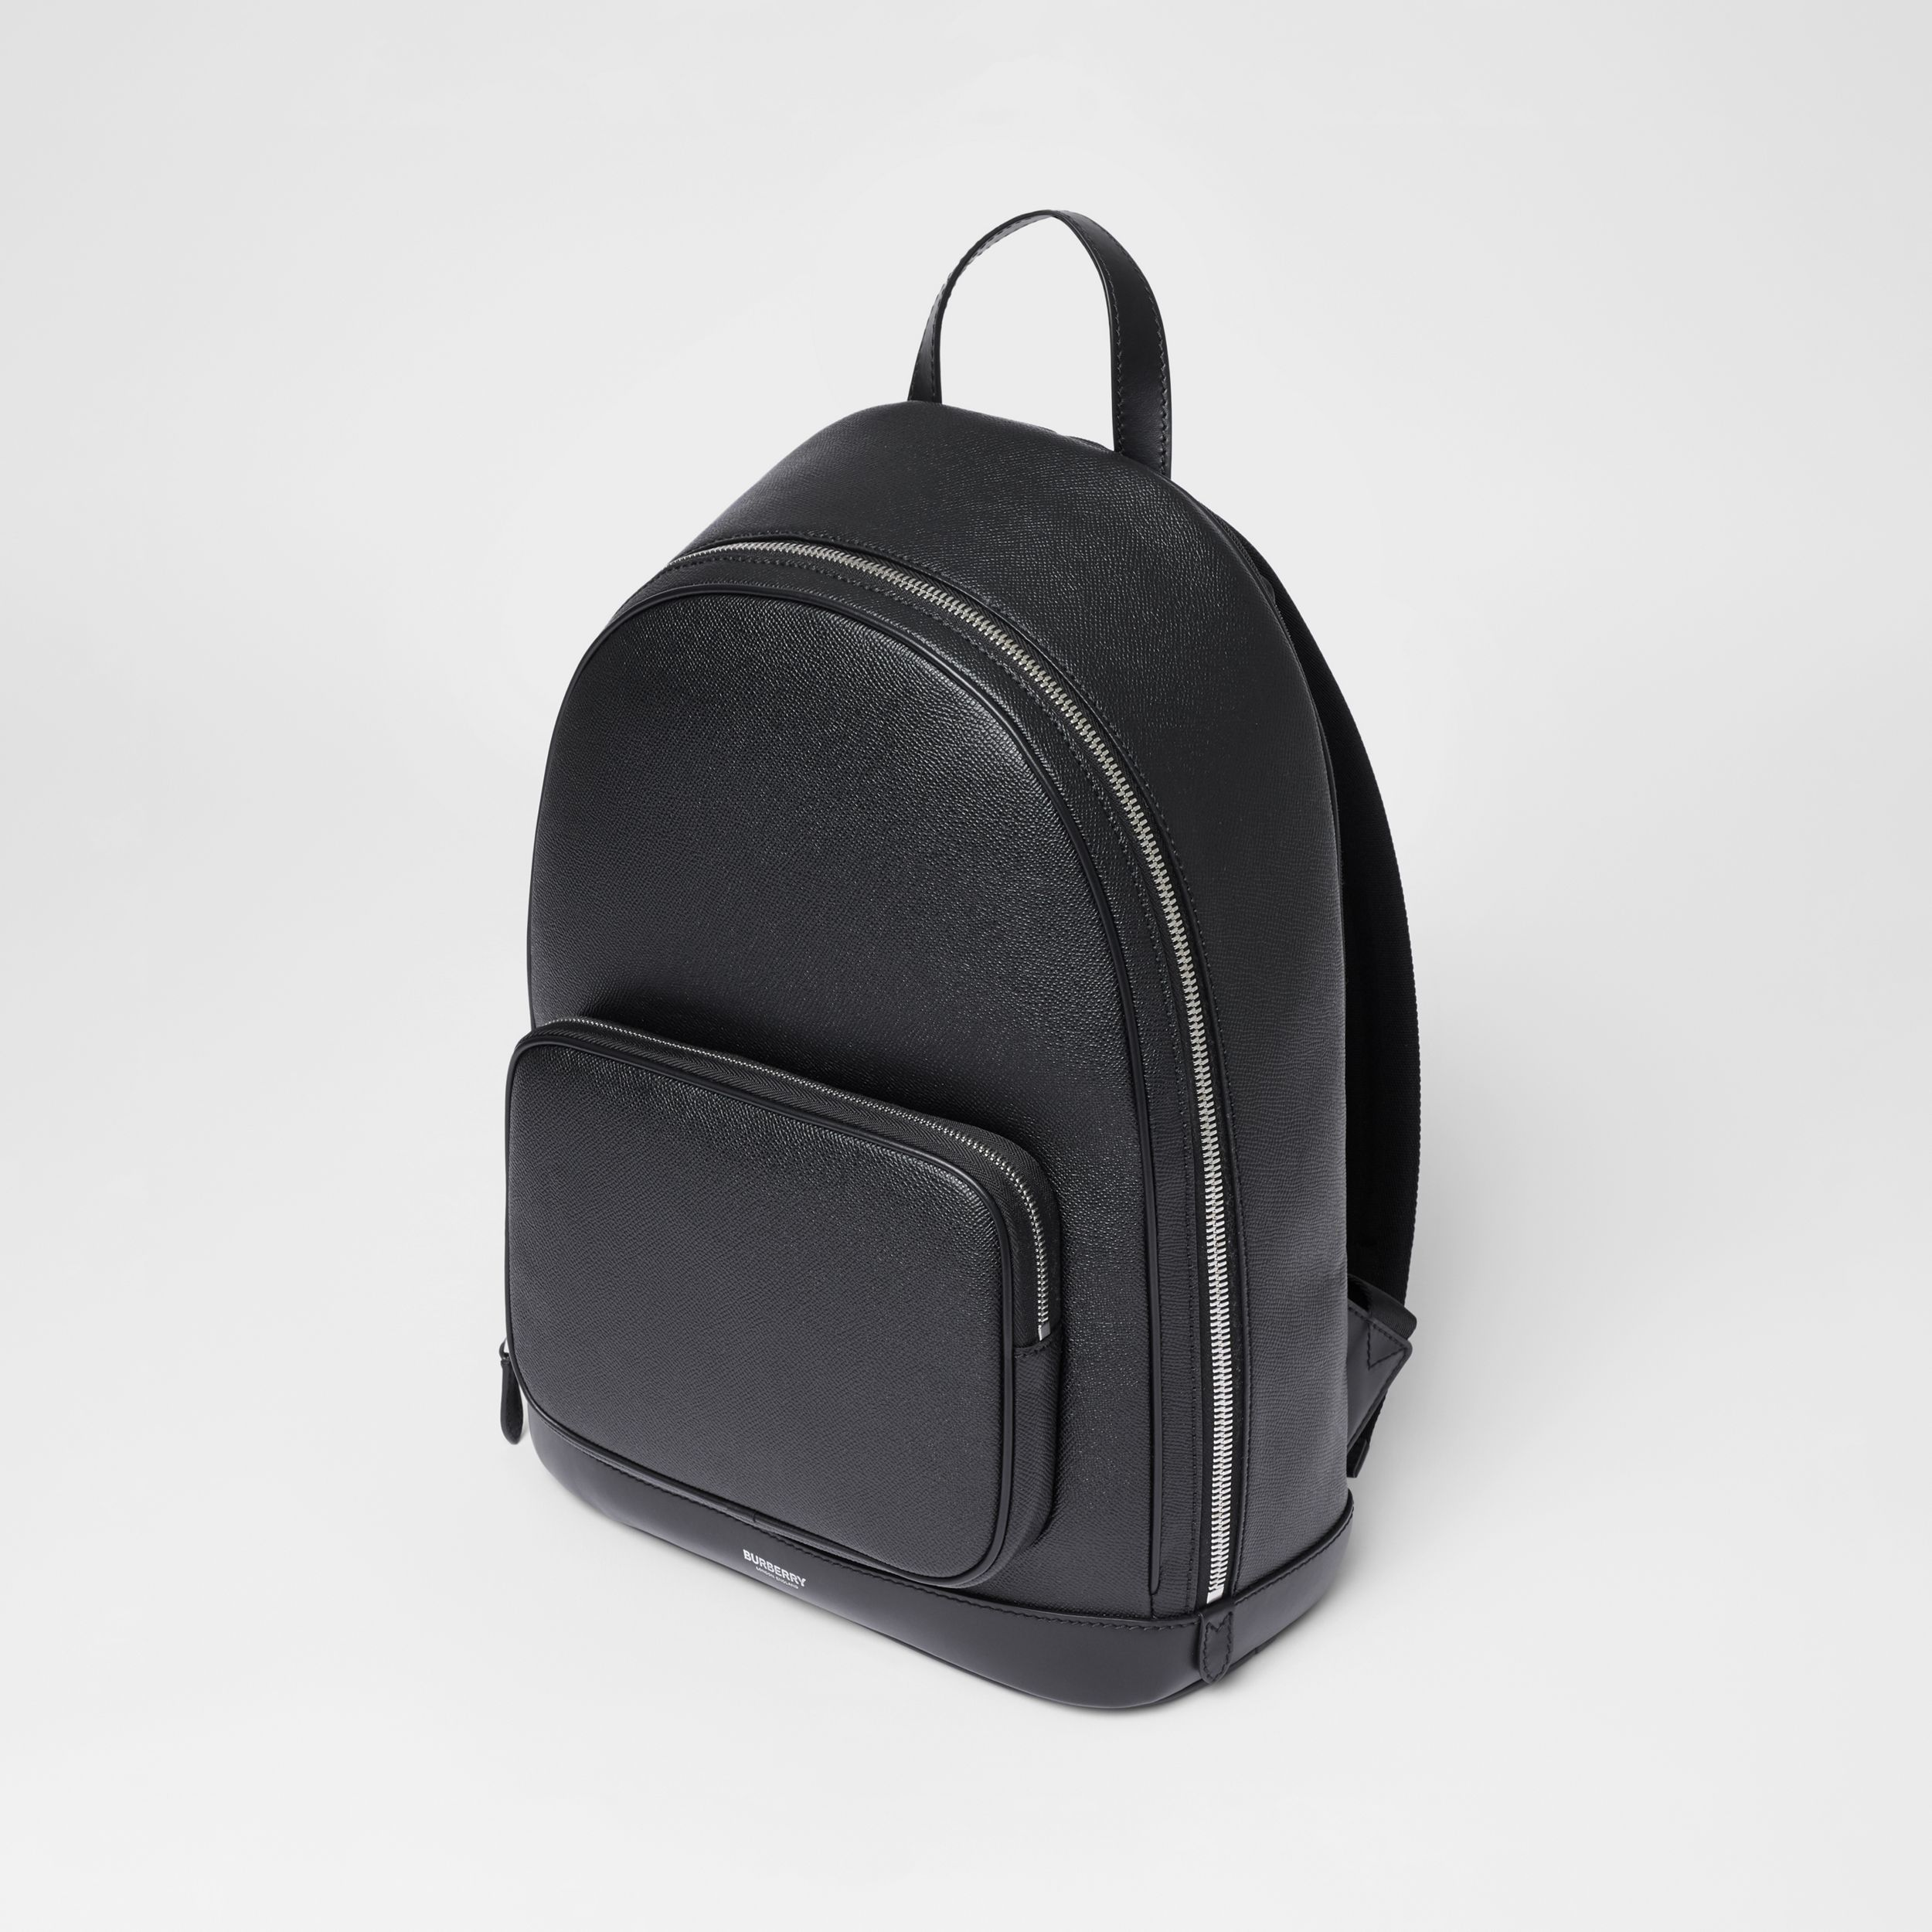 Grainy Leather Backpack in Black - Men | Burberry - 3